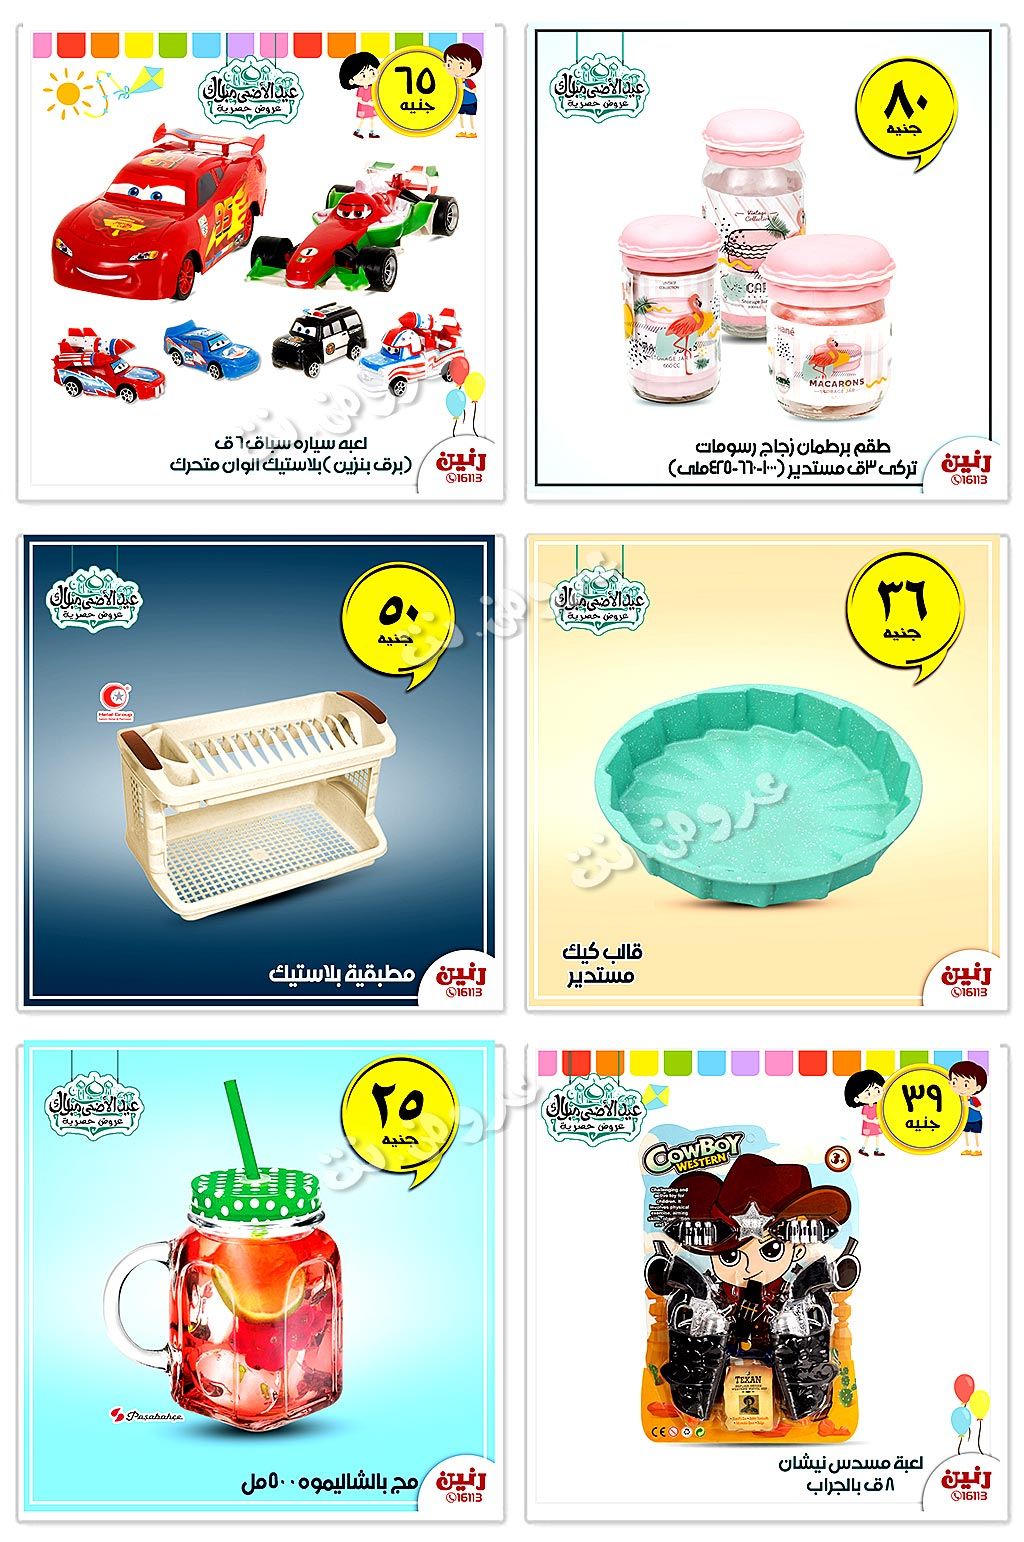 raneen offers from 31july to 3aug 2020 page number 10 عروض رنين من 31 يوليو حتى 3 أغسطس 2020 صفحة رقم 10